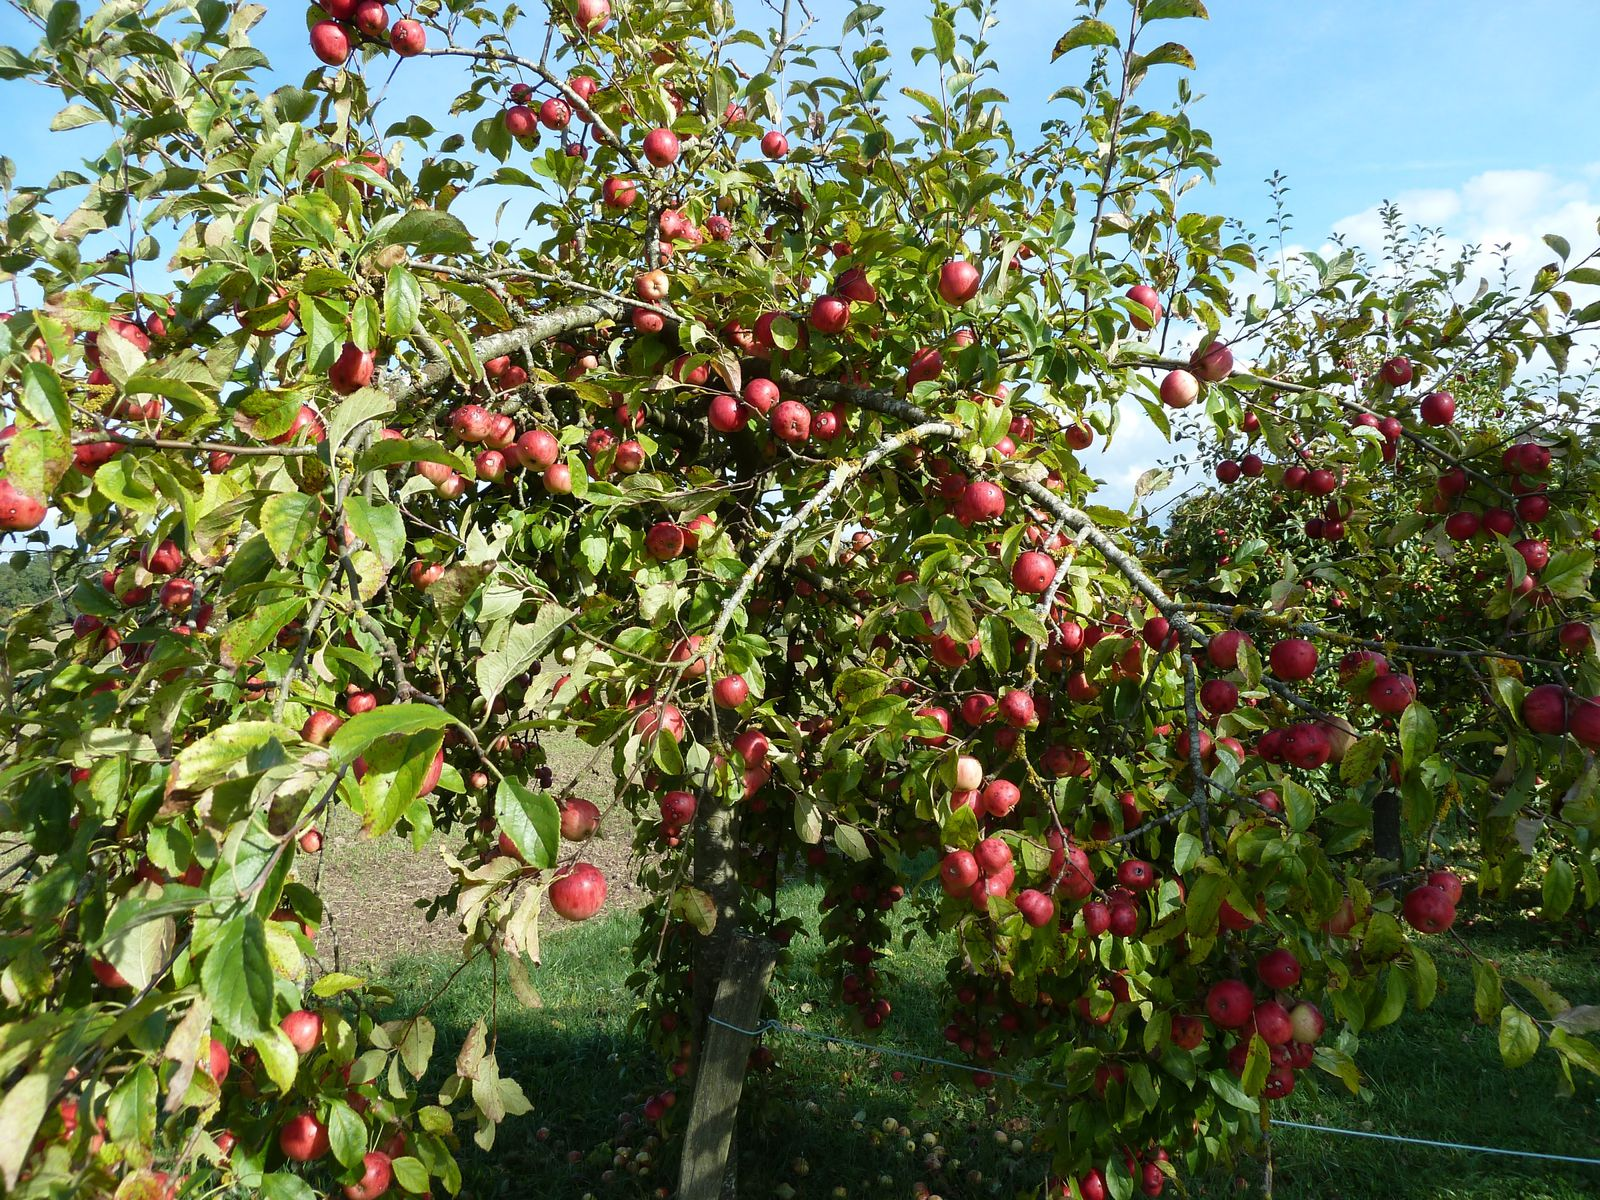 Quelques jolis pommiers arborent leurs fruits rouge, mais interdiction d'y toucher...